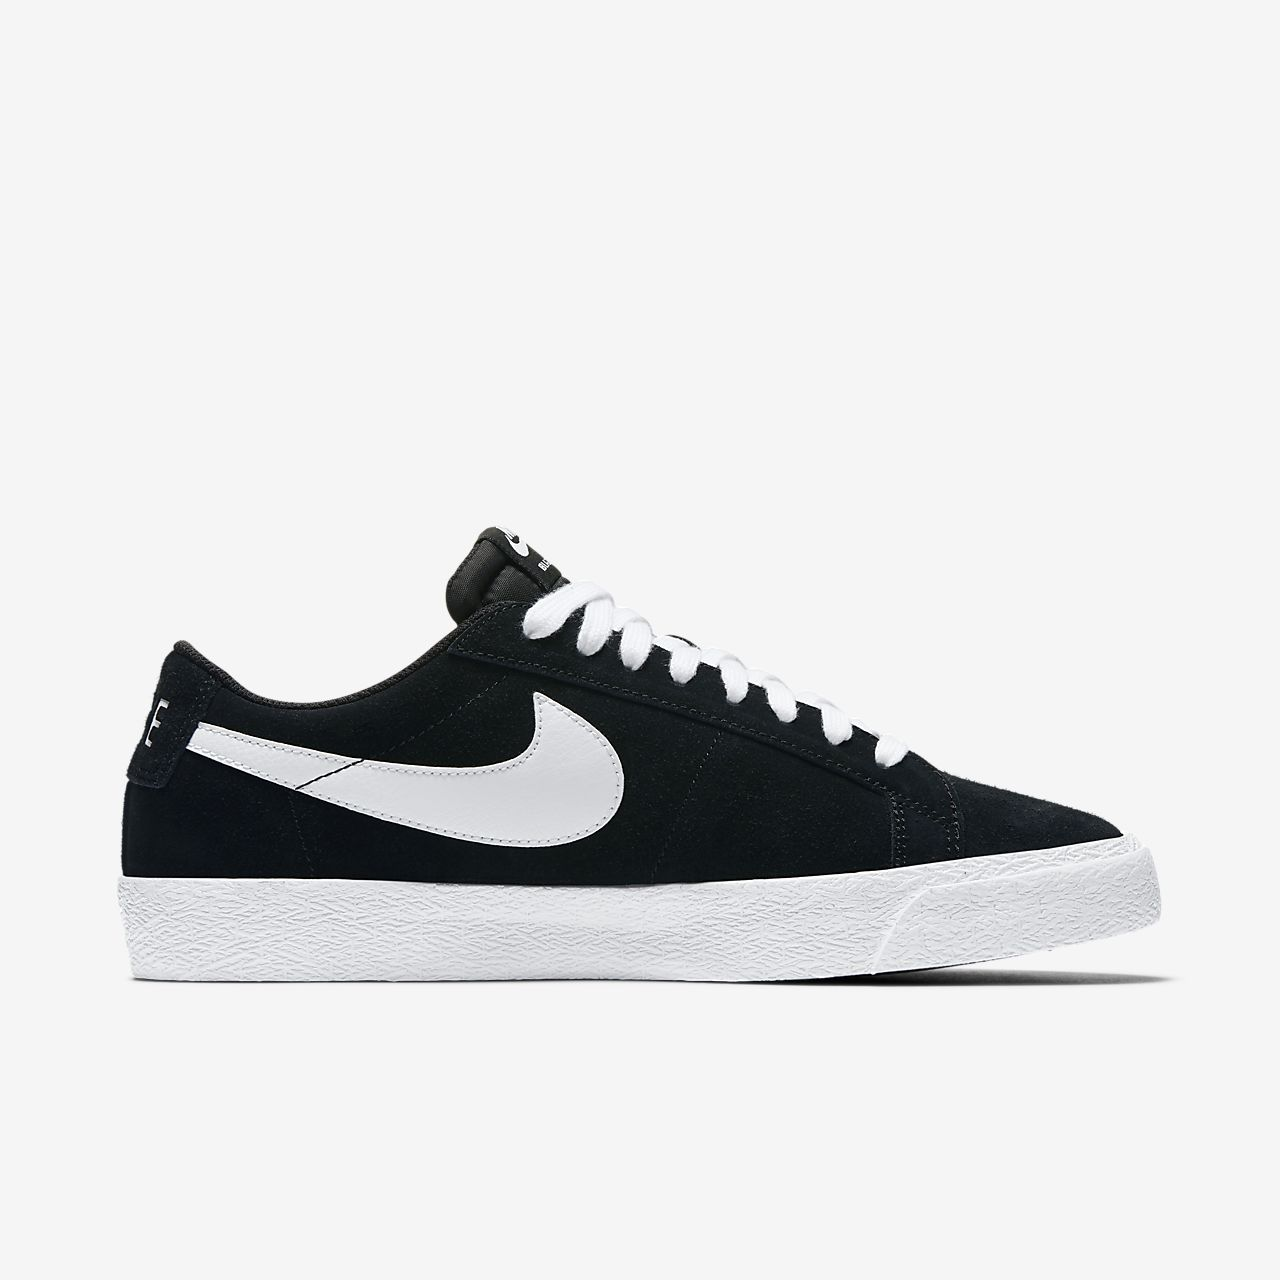 645770e44f3c Nike SB Blazer Zoom Low Men s Skateboarding Shoe. Nike.com